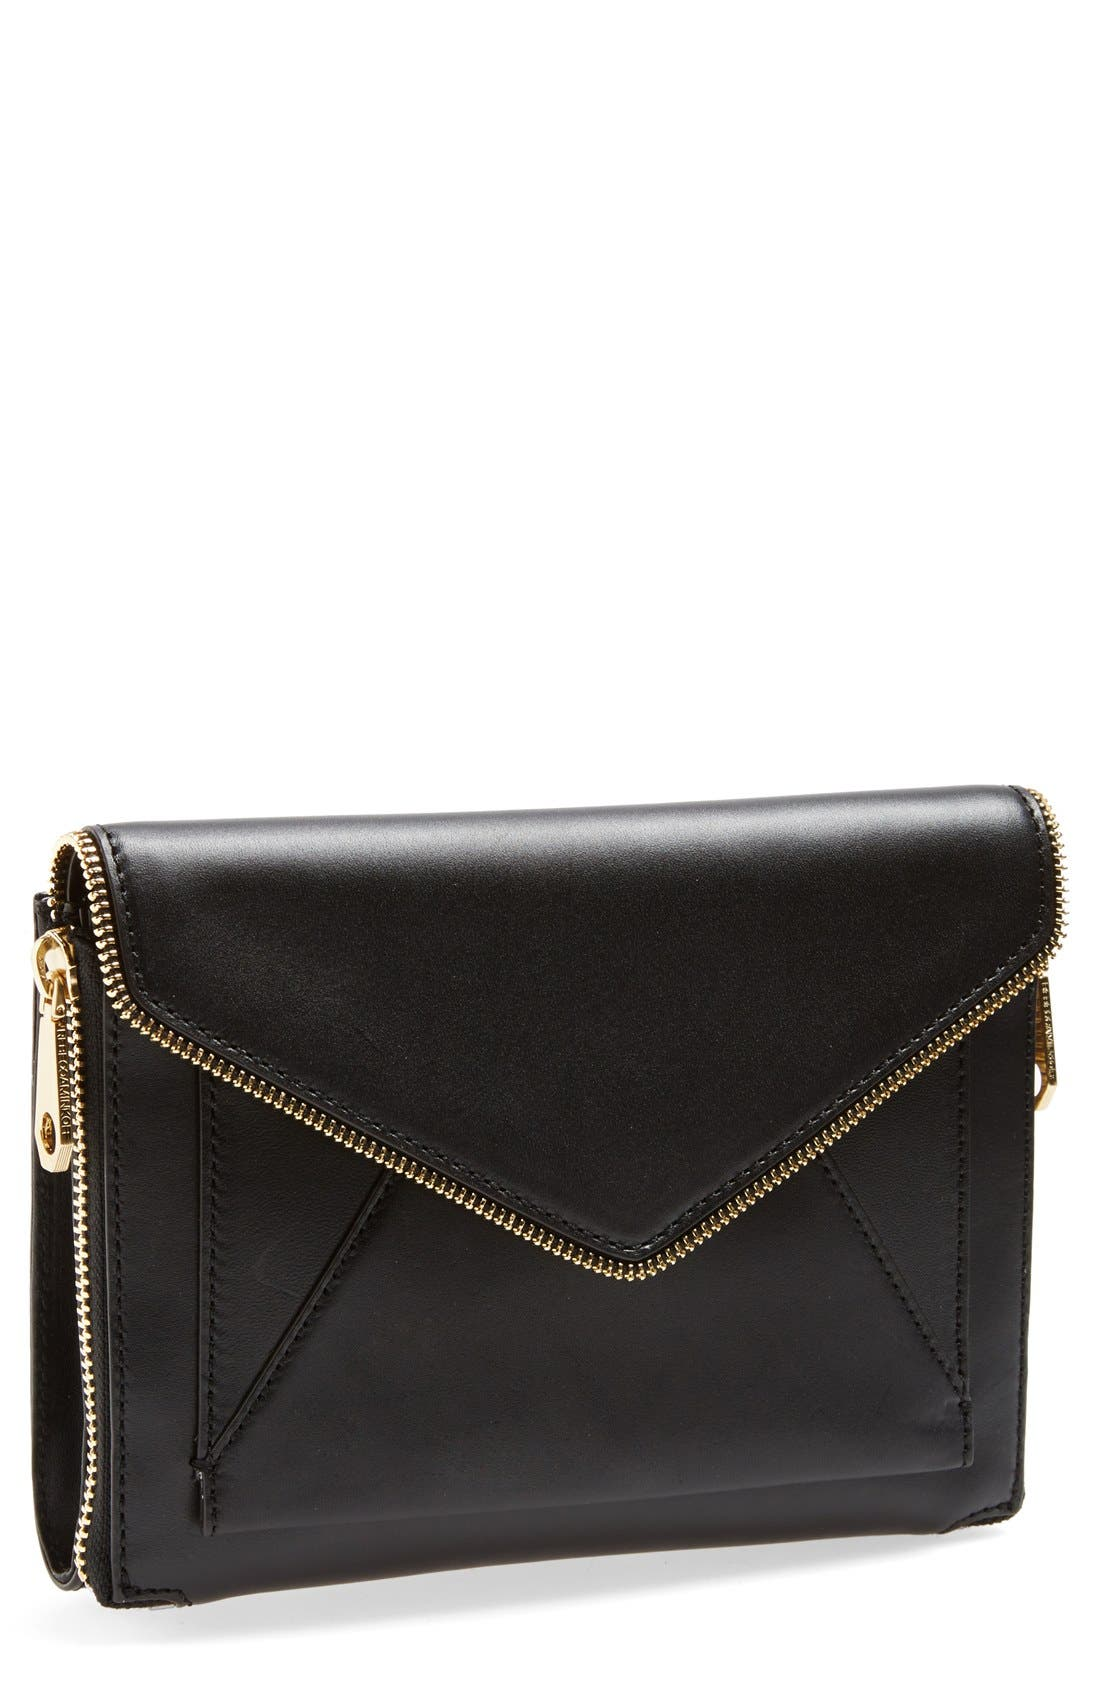 Alternate Image 1 Selected - Rebecca Minkoff 'Mini Marlowe' Clutch